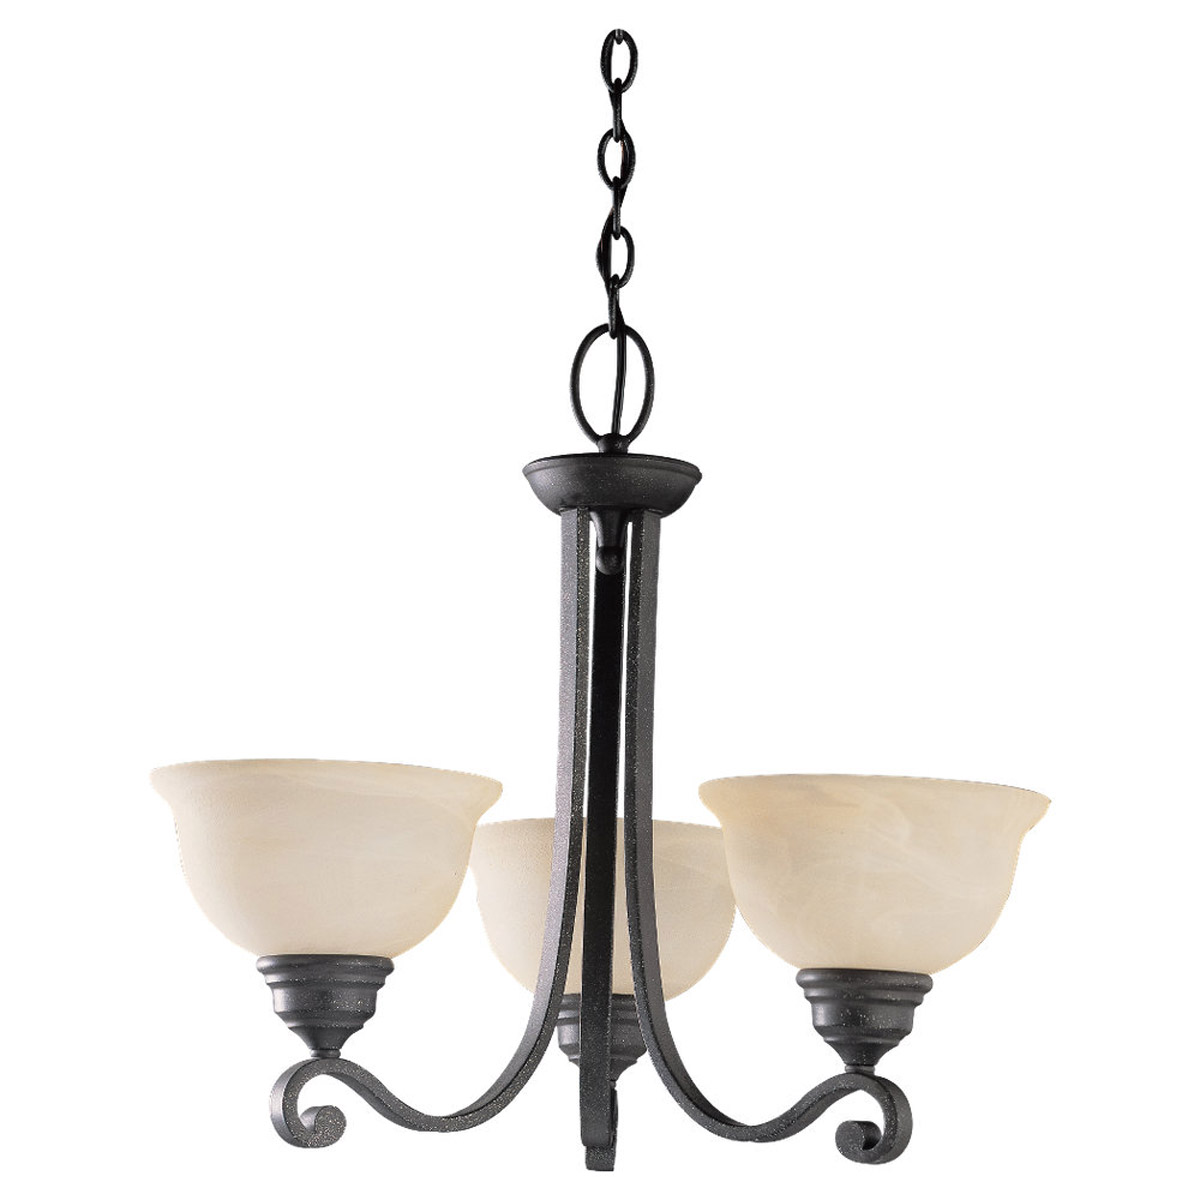 Sea Gull Lighting Serenity 3 Light Chandelier in Weathered Iron 31190-07 photo